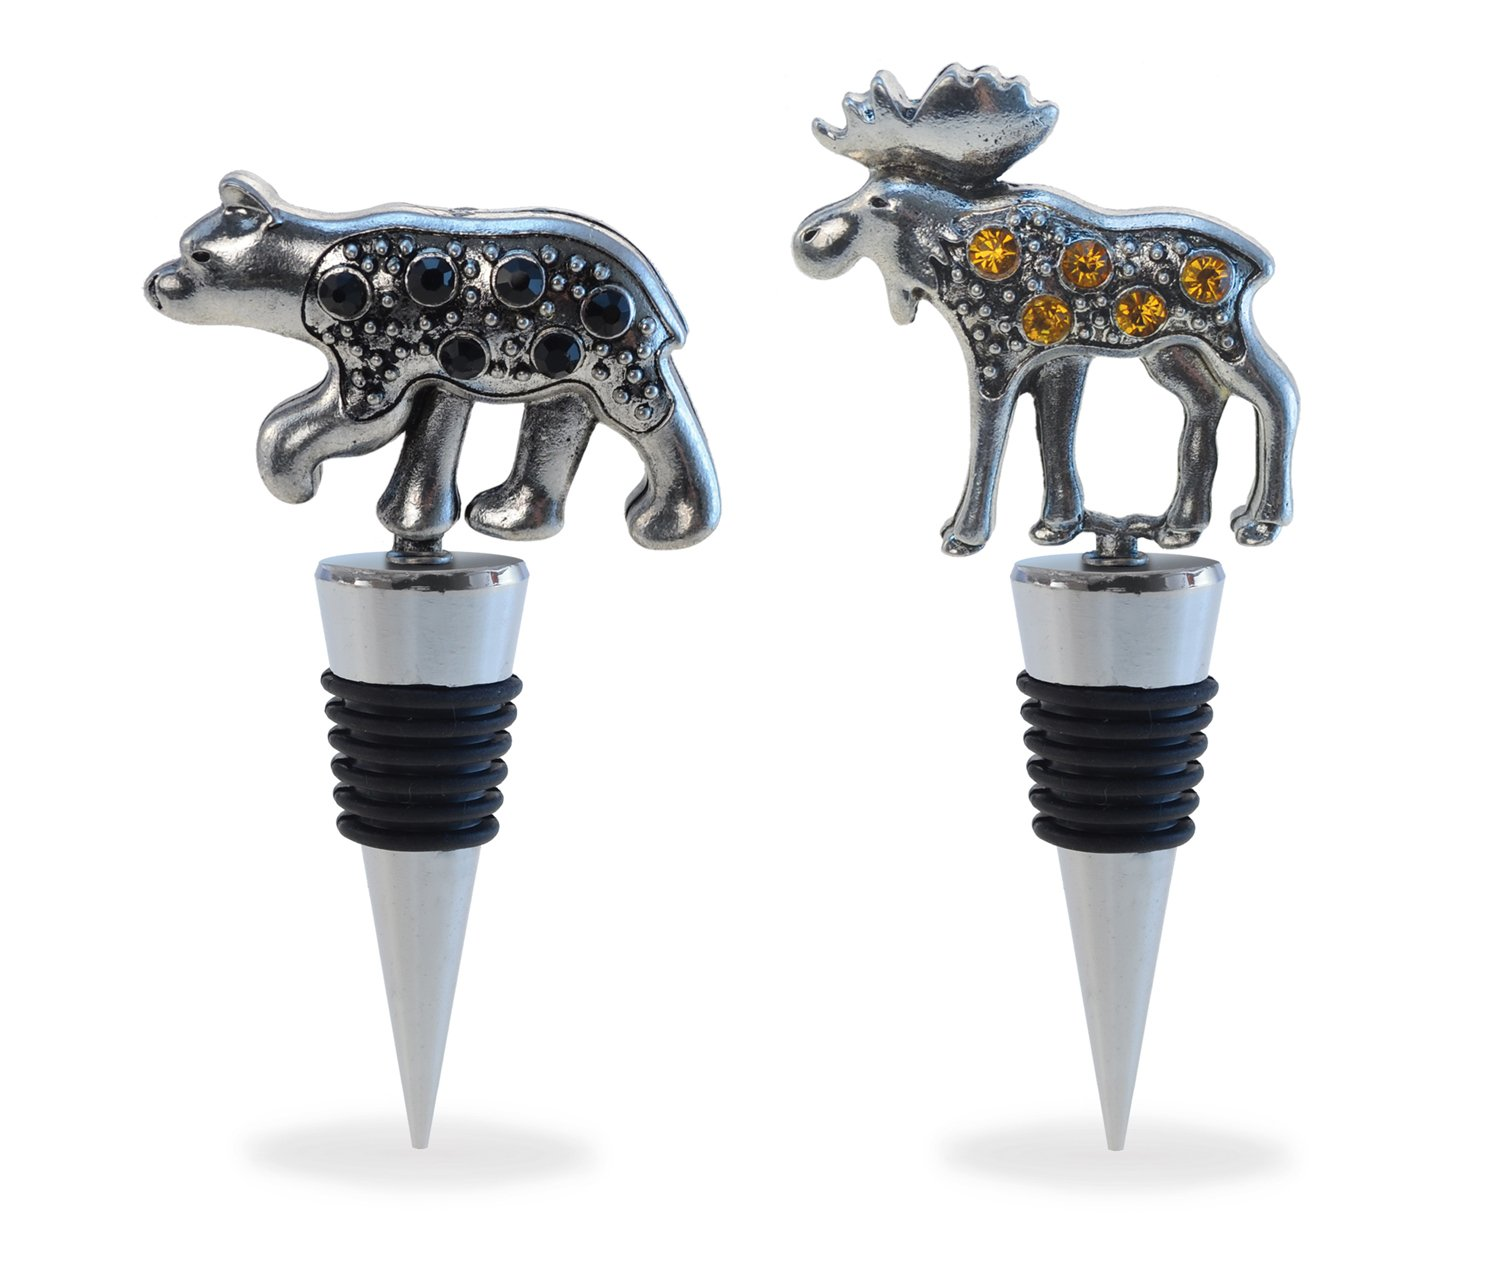 Puzzled Cheers Metal Alloy & Crystals Animal Cheers Chrome-Plated Zinc Glass Wine Stopper Silicone Stopper Black Bear & Moose Leak-Proof Beer Beverage Bottle Sealer Toppers Perfect Gift Bar Tool Set